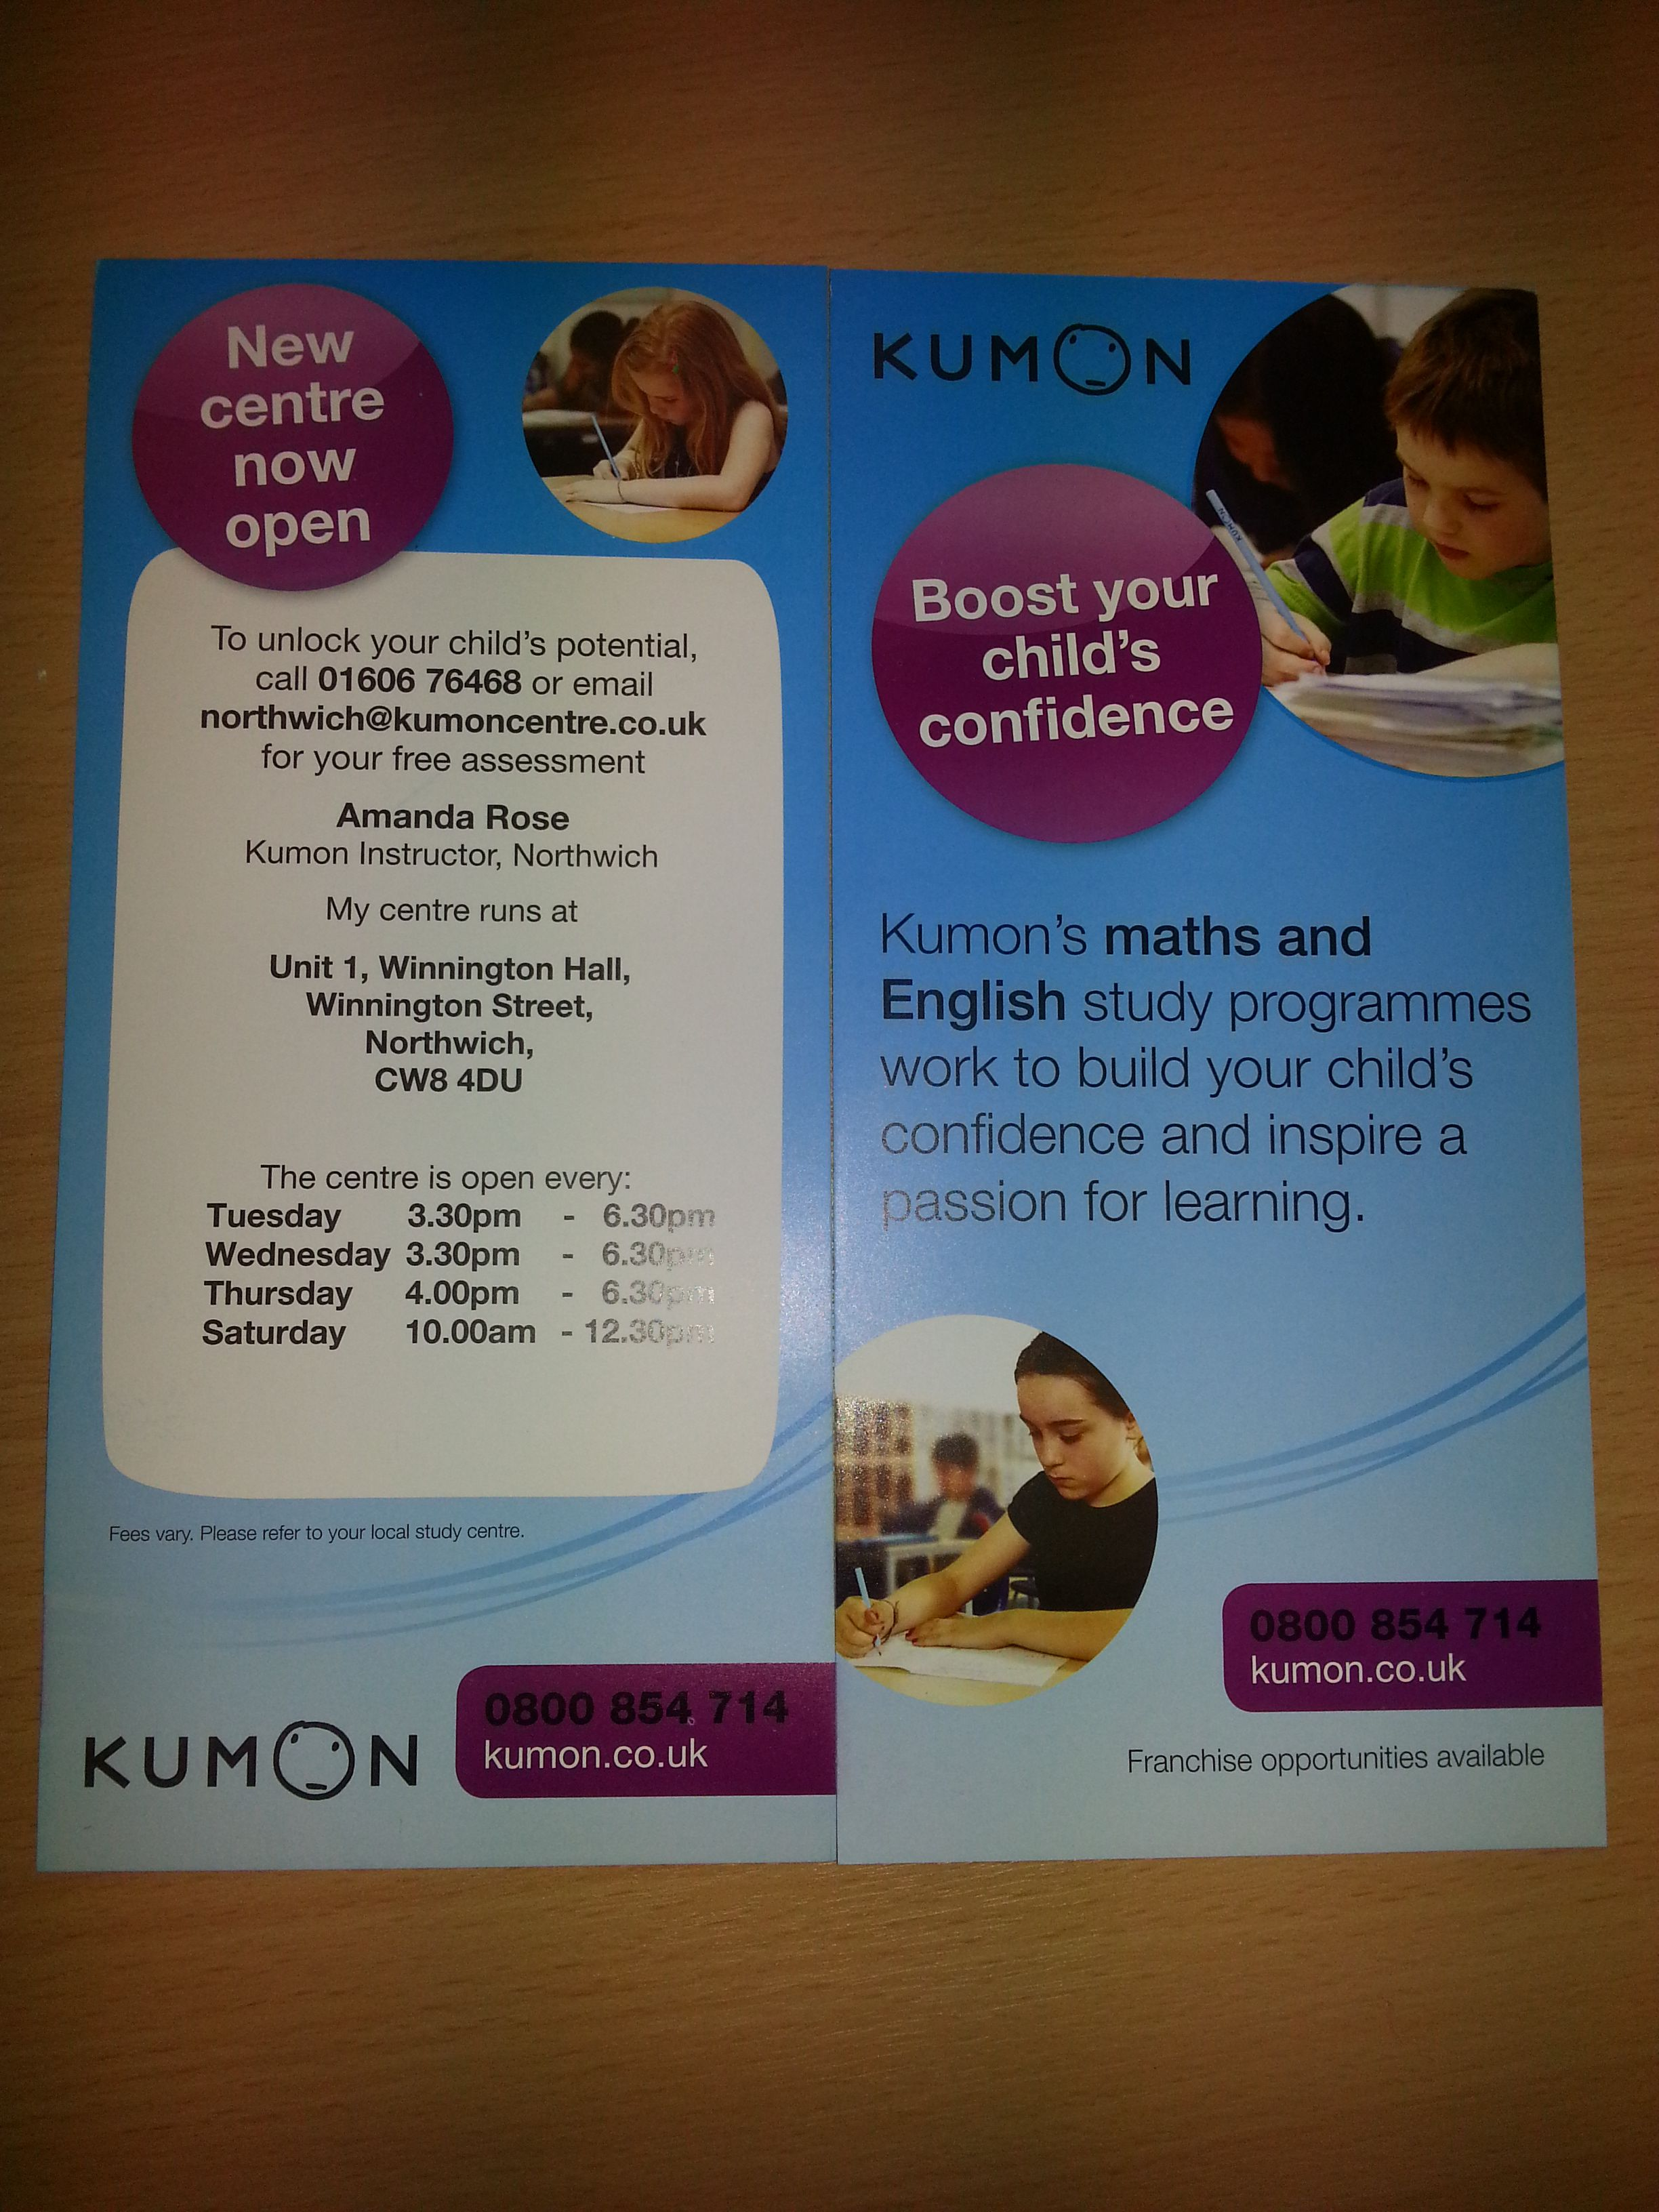 Opening times, address and contact details for #kumonnorthwich ...